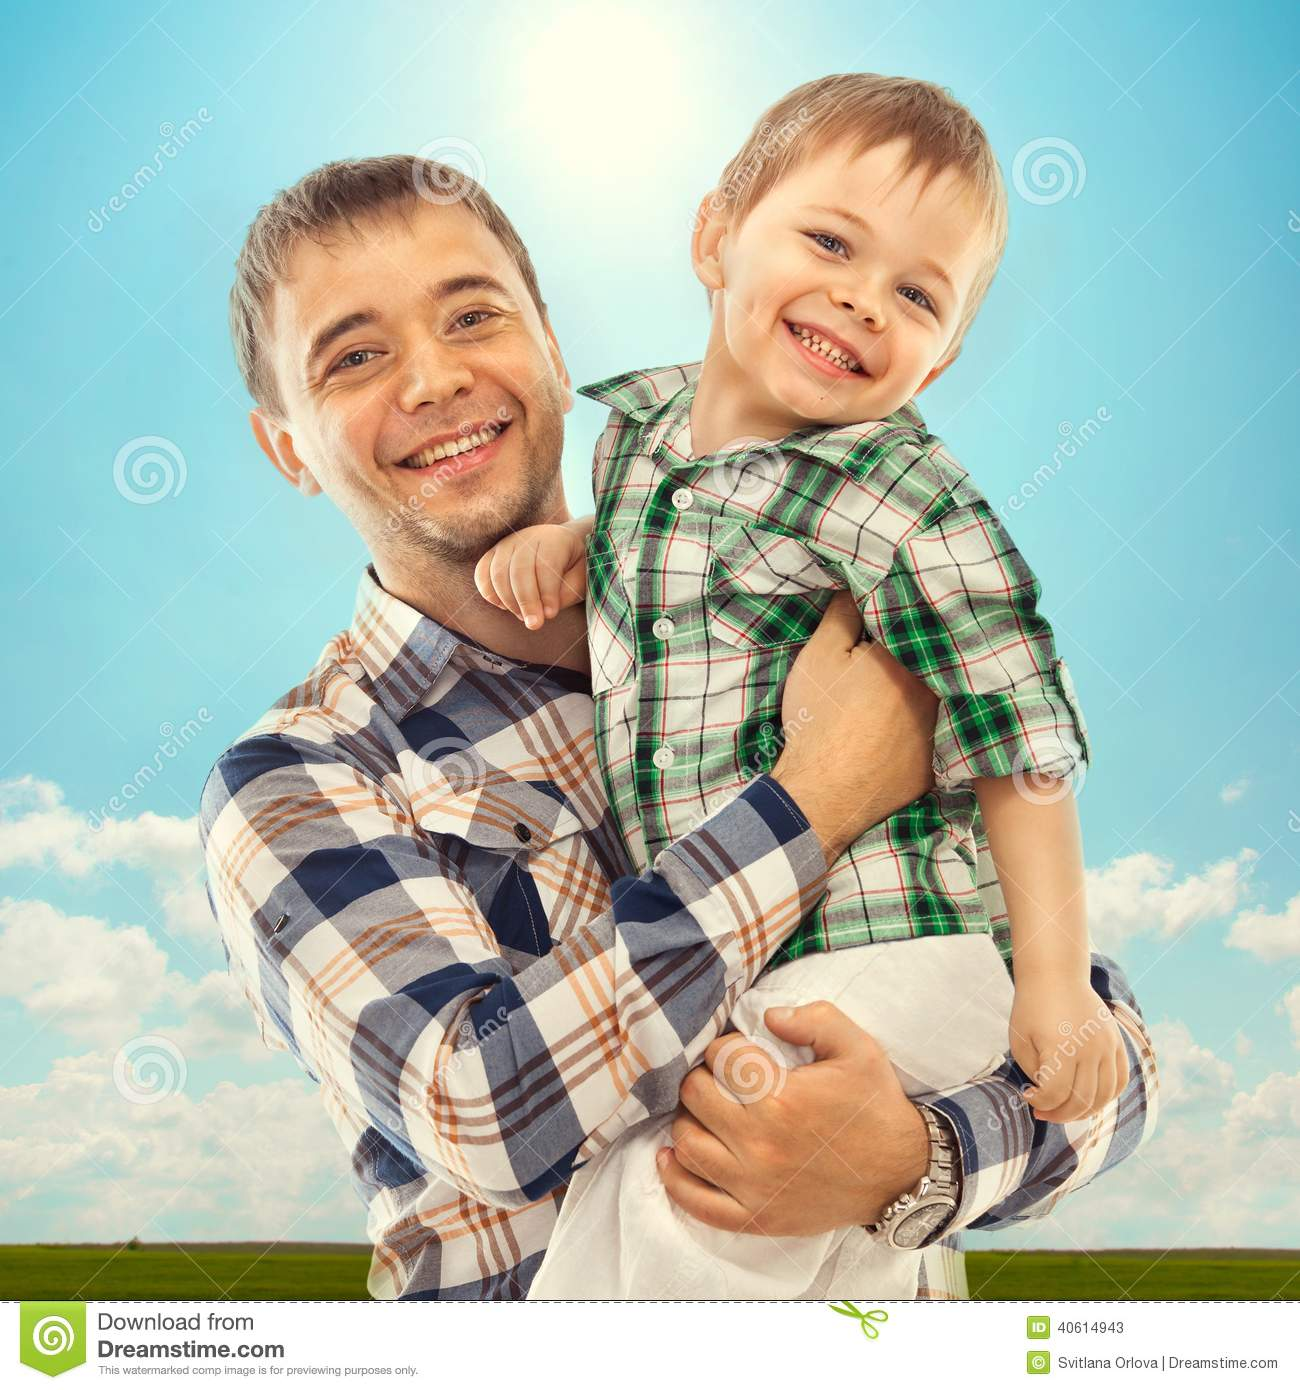 Joyful father with son carefree and happy